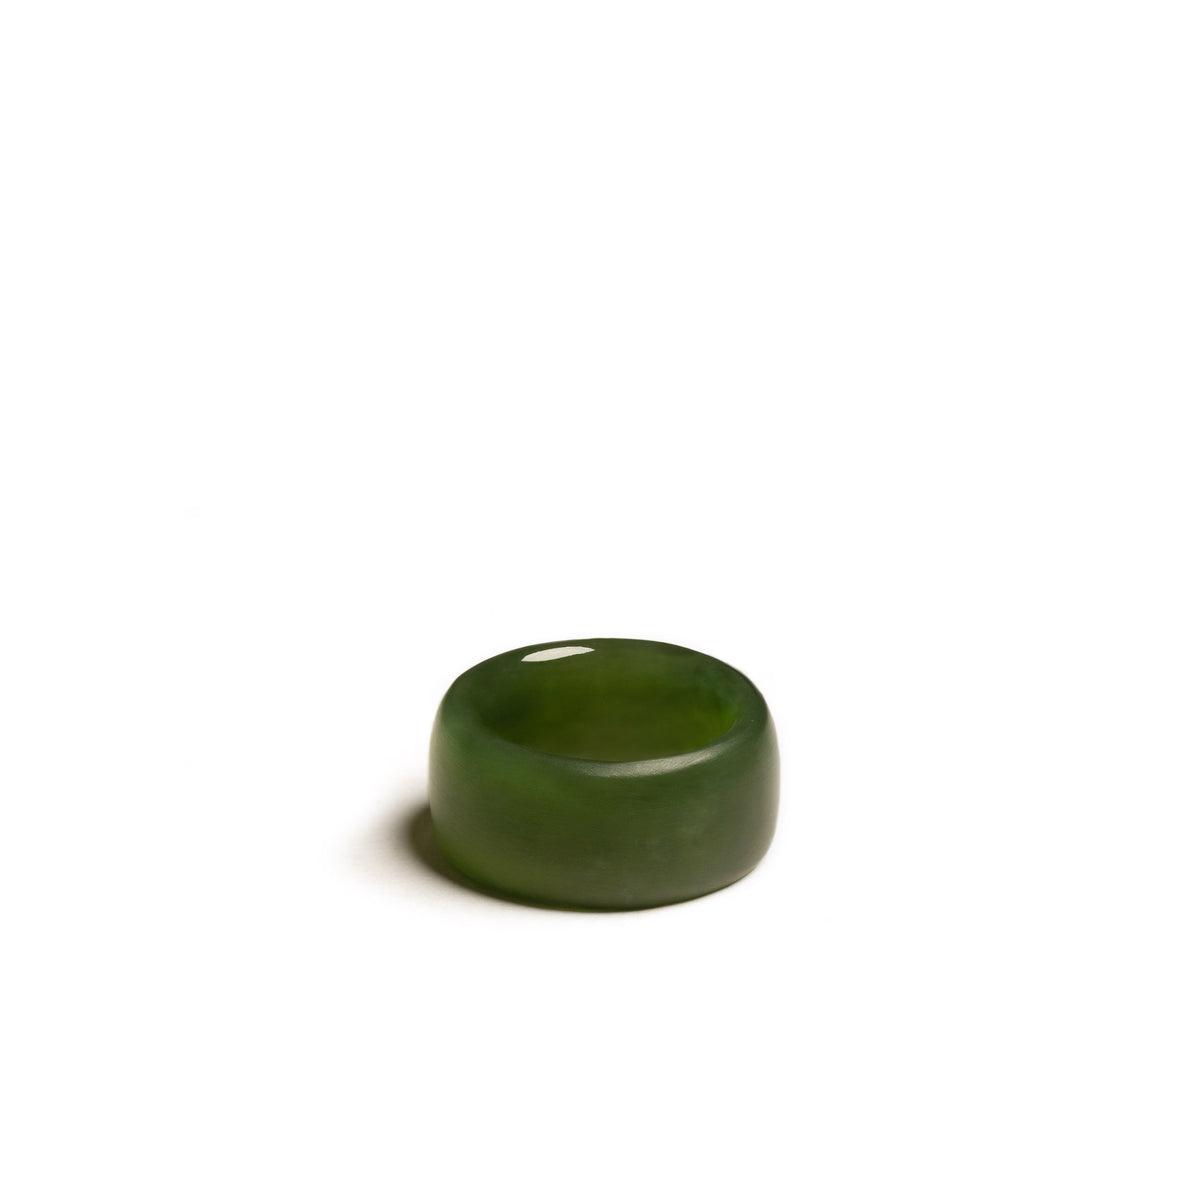 New Zealand Pounamu / Q - 18mm